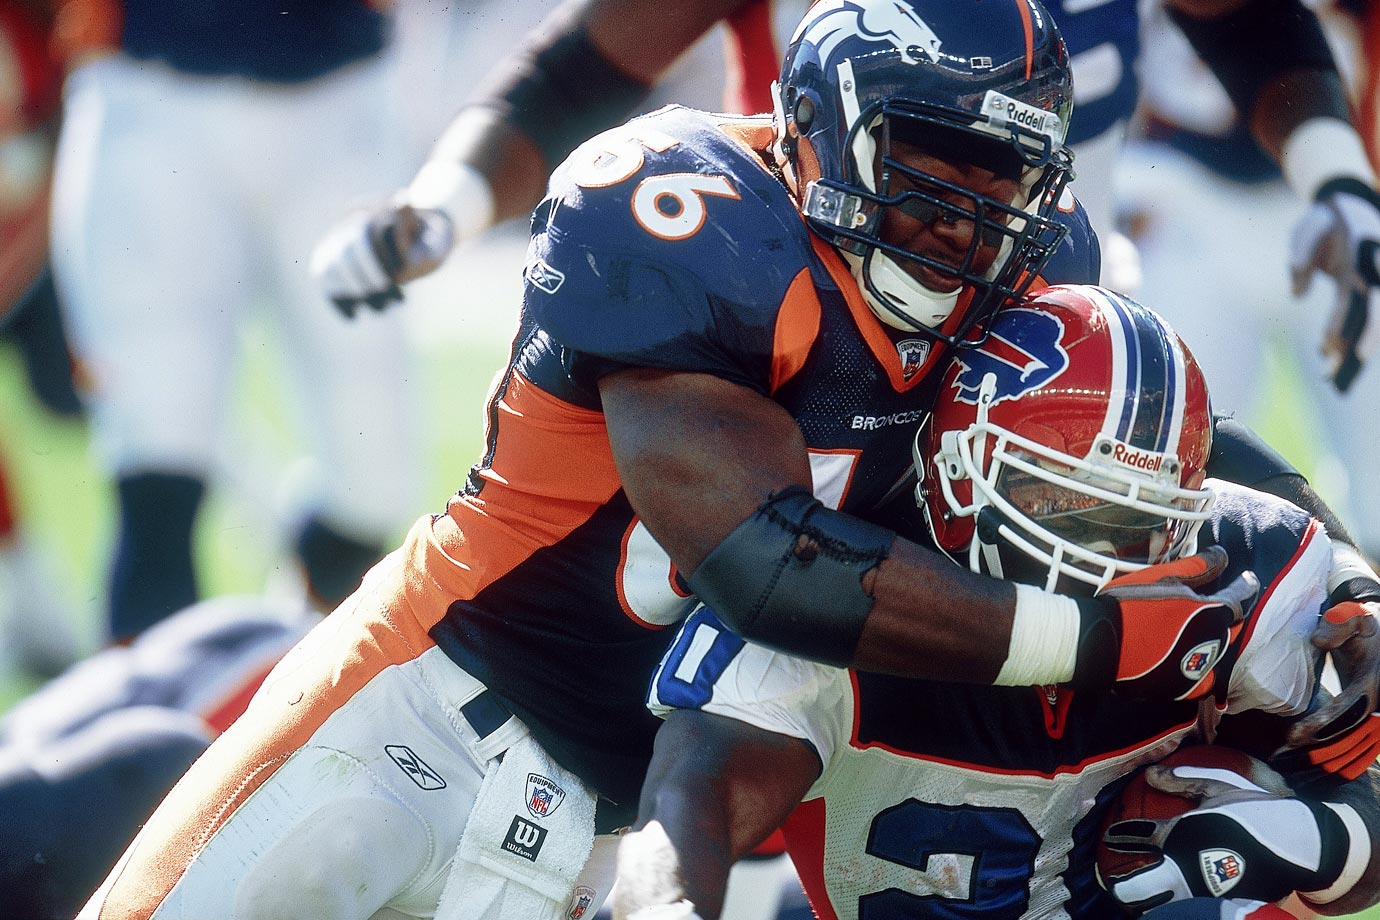 Wilson played eight seasons with Denver and was the heart and soul of the defense until his career ended prematurely after sustaining a neck injury in 2006. His Credentials: Five-time Pro Bowl selection, 580 career tackles and 21.5 sacks. Others in Consideration: Todd Heap (2001, Ravens), Nnamdi Asomugha (2003, Raiders), Greg Olsen (2005, Bears)